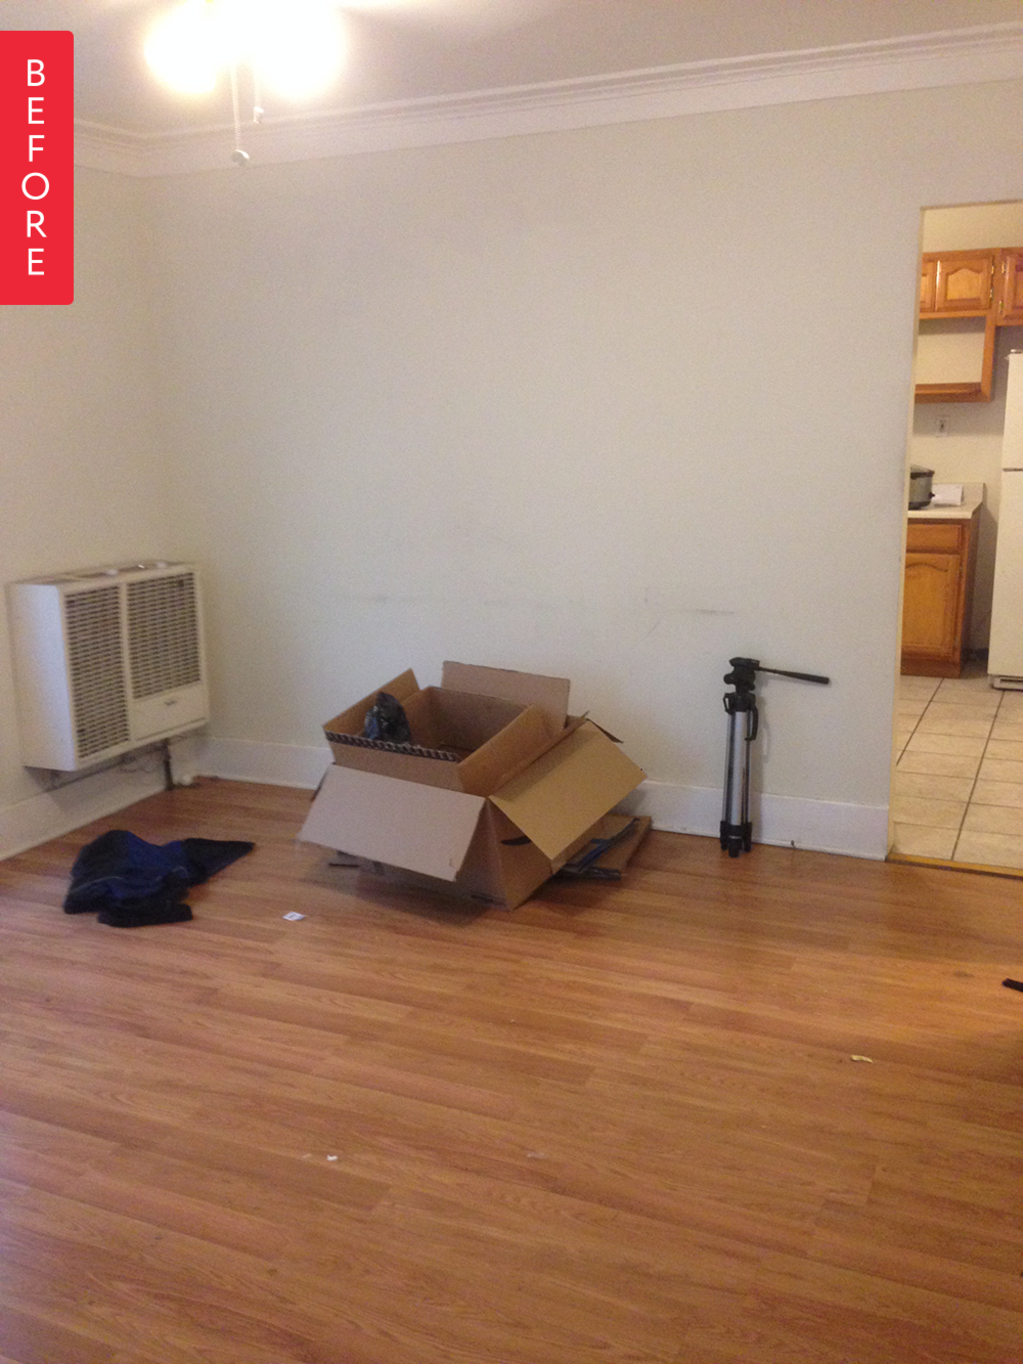 Before & After: A Dingy Apartment Gets Some L.A. Style